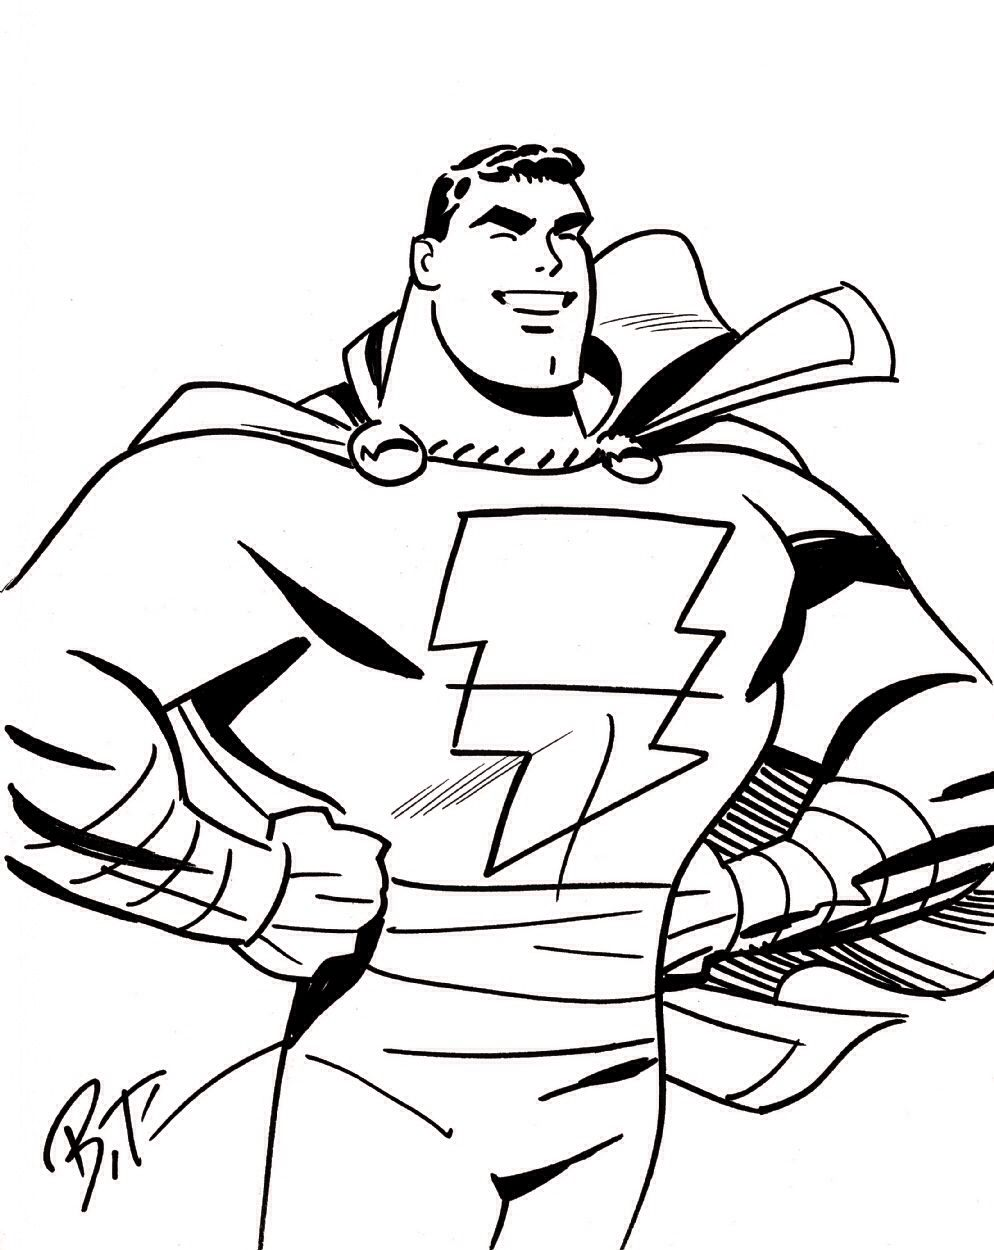 Captain Marvel (Shazam) Sketch by Bruce Timm | Shazam /Captain ...